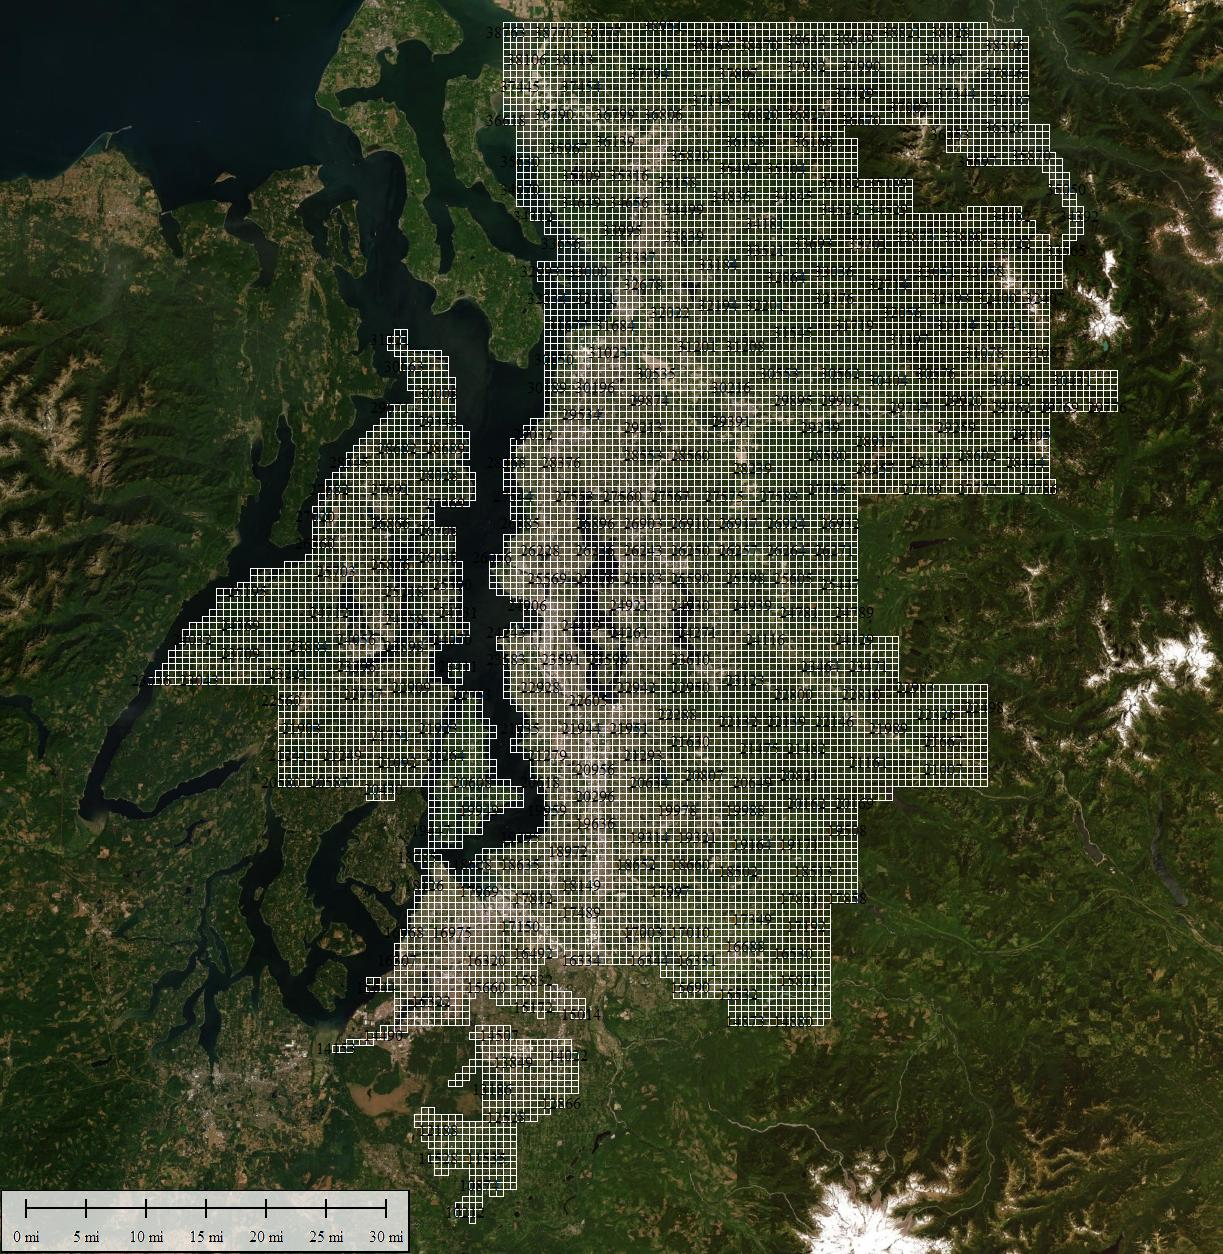 Tile Layout for 2015 King County Orthoimagery Program